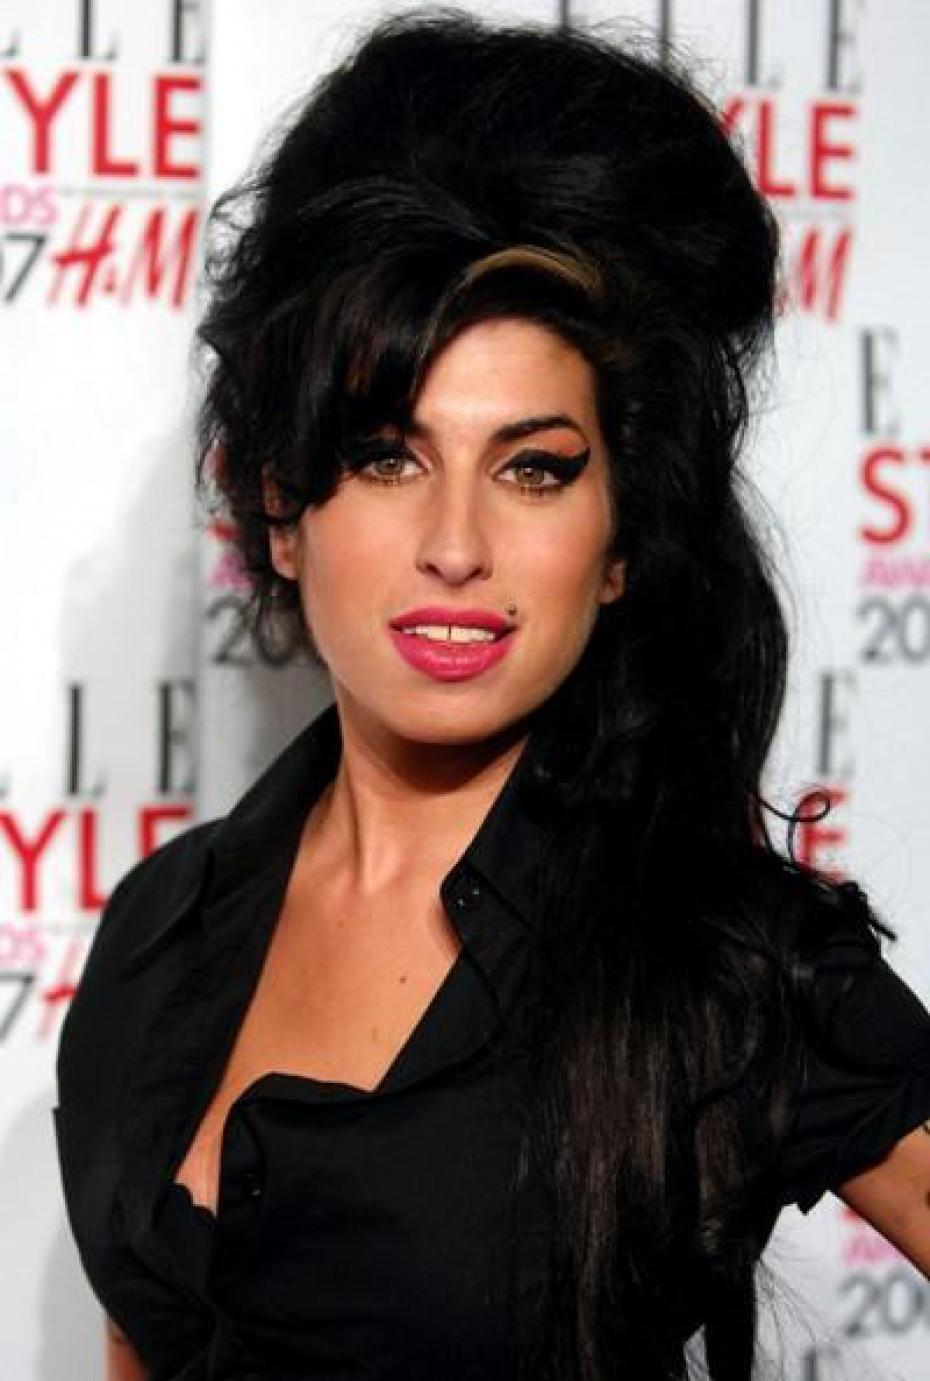 Amy Winehouse | Photos, Facebook, News & Blogs for Free at Social ...